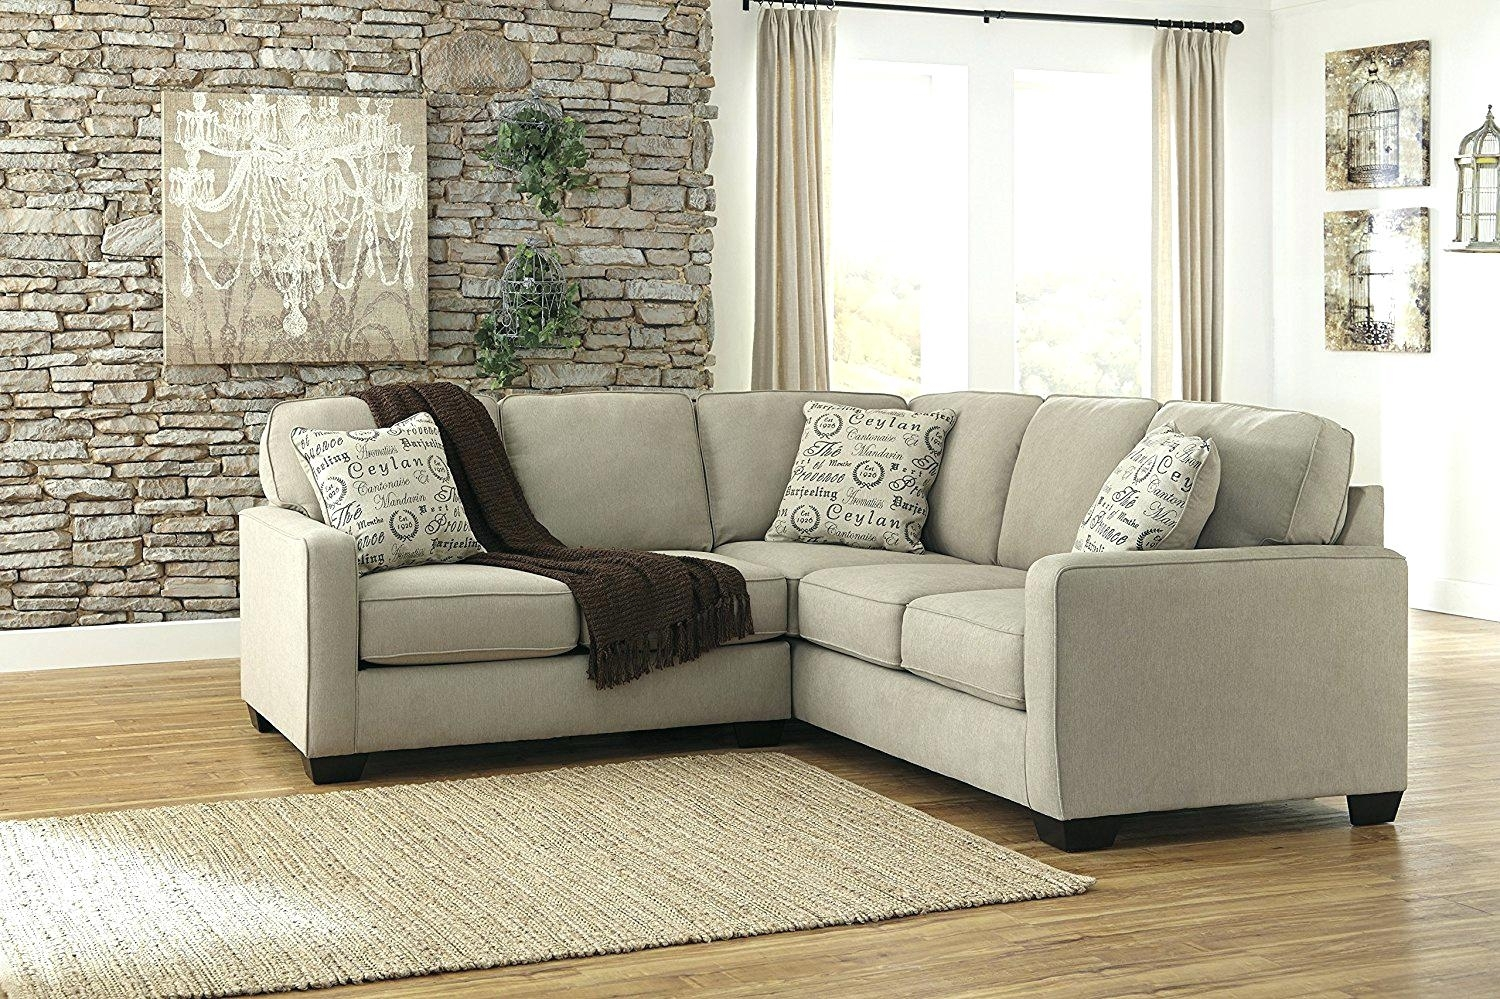 10 Best Collection Of Wilmington Nc Sectional Sofas